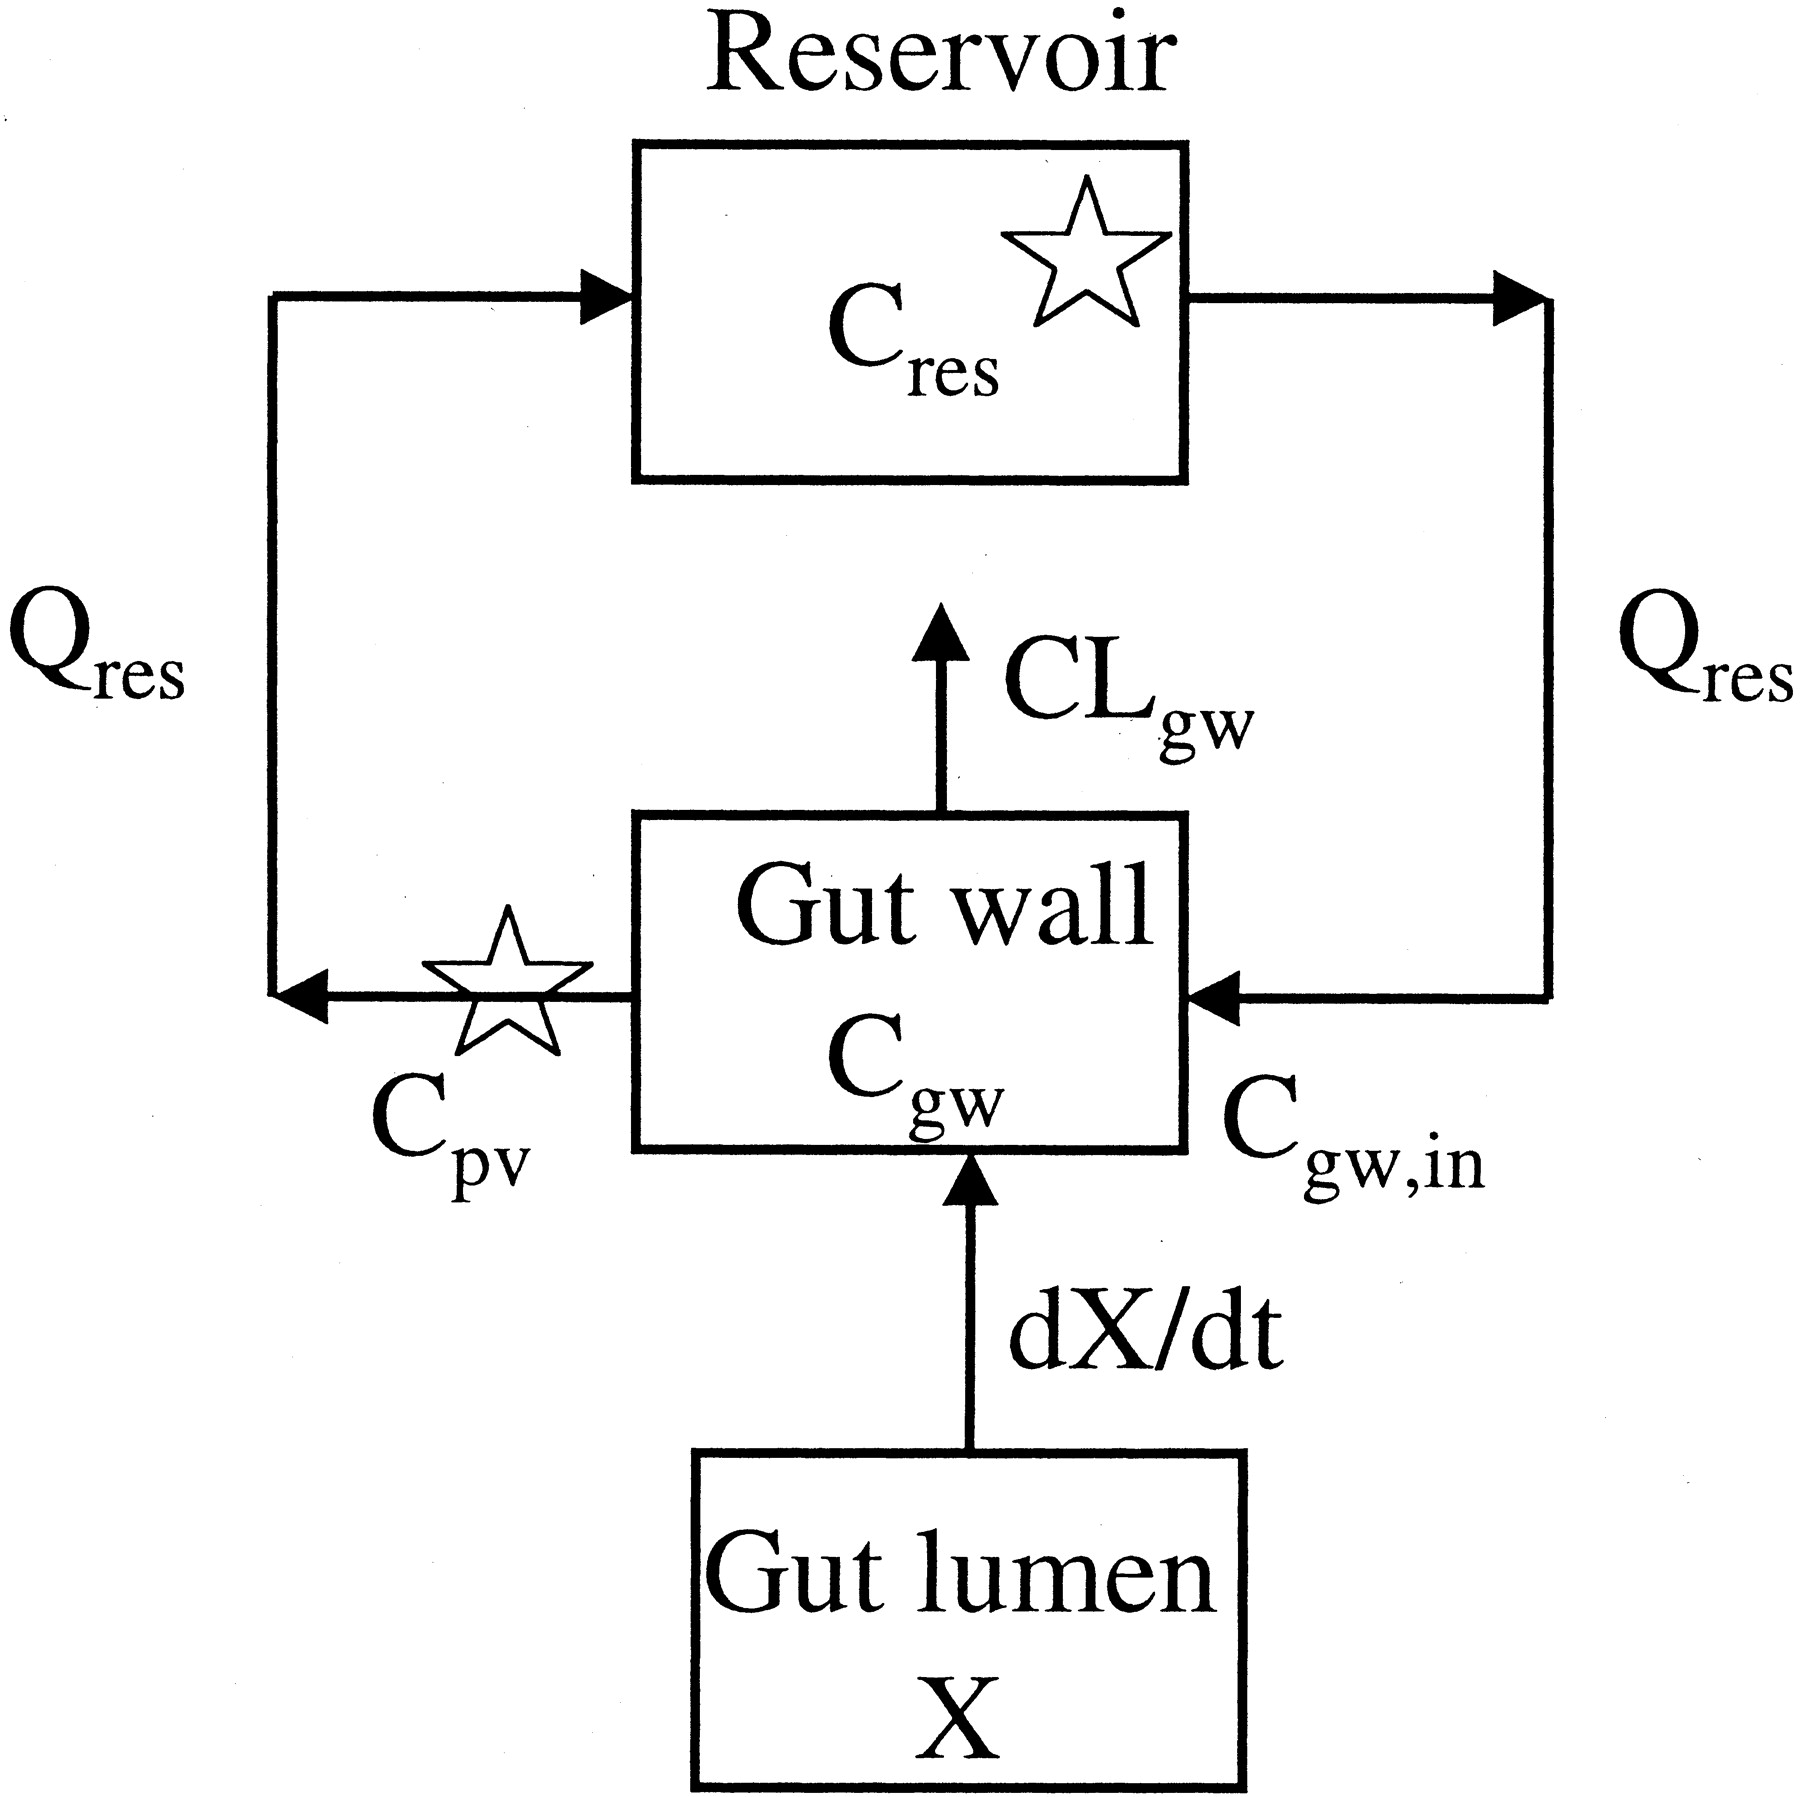 Intestinal Metabolism The Role Of Enzyme Localization In Phenol Led Light Organ Circuit Diagram Circuits Lab Download Figure Open New Tab Powerpoint 1 Schematic Representation